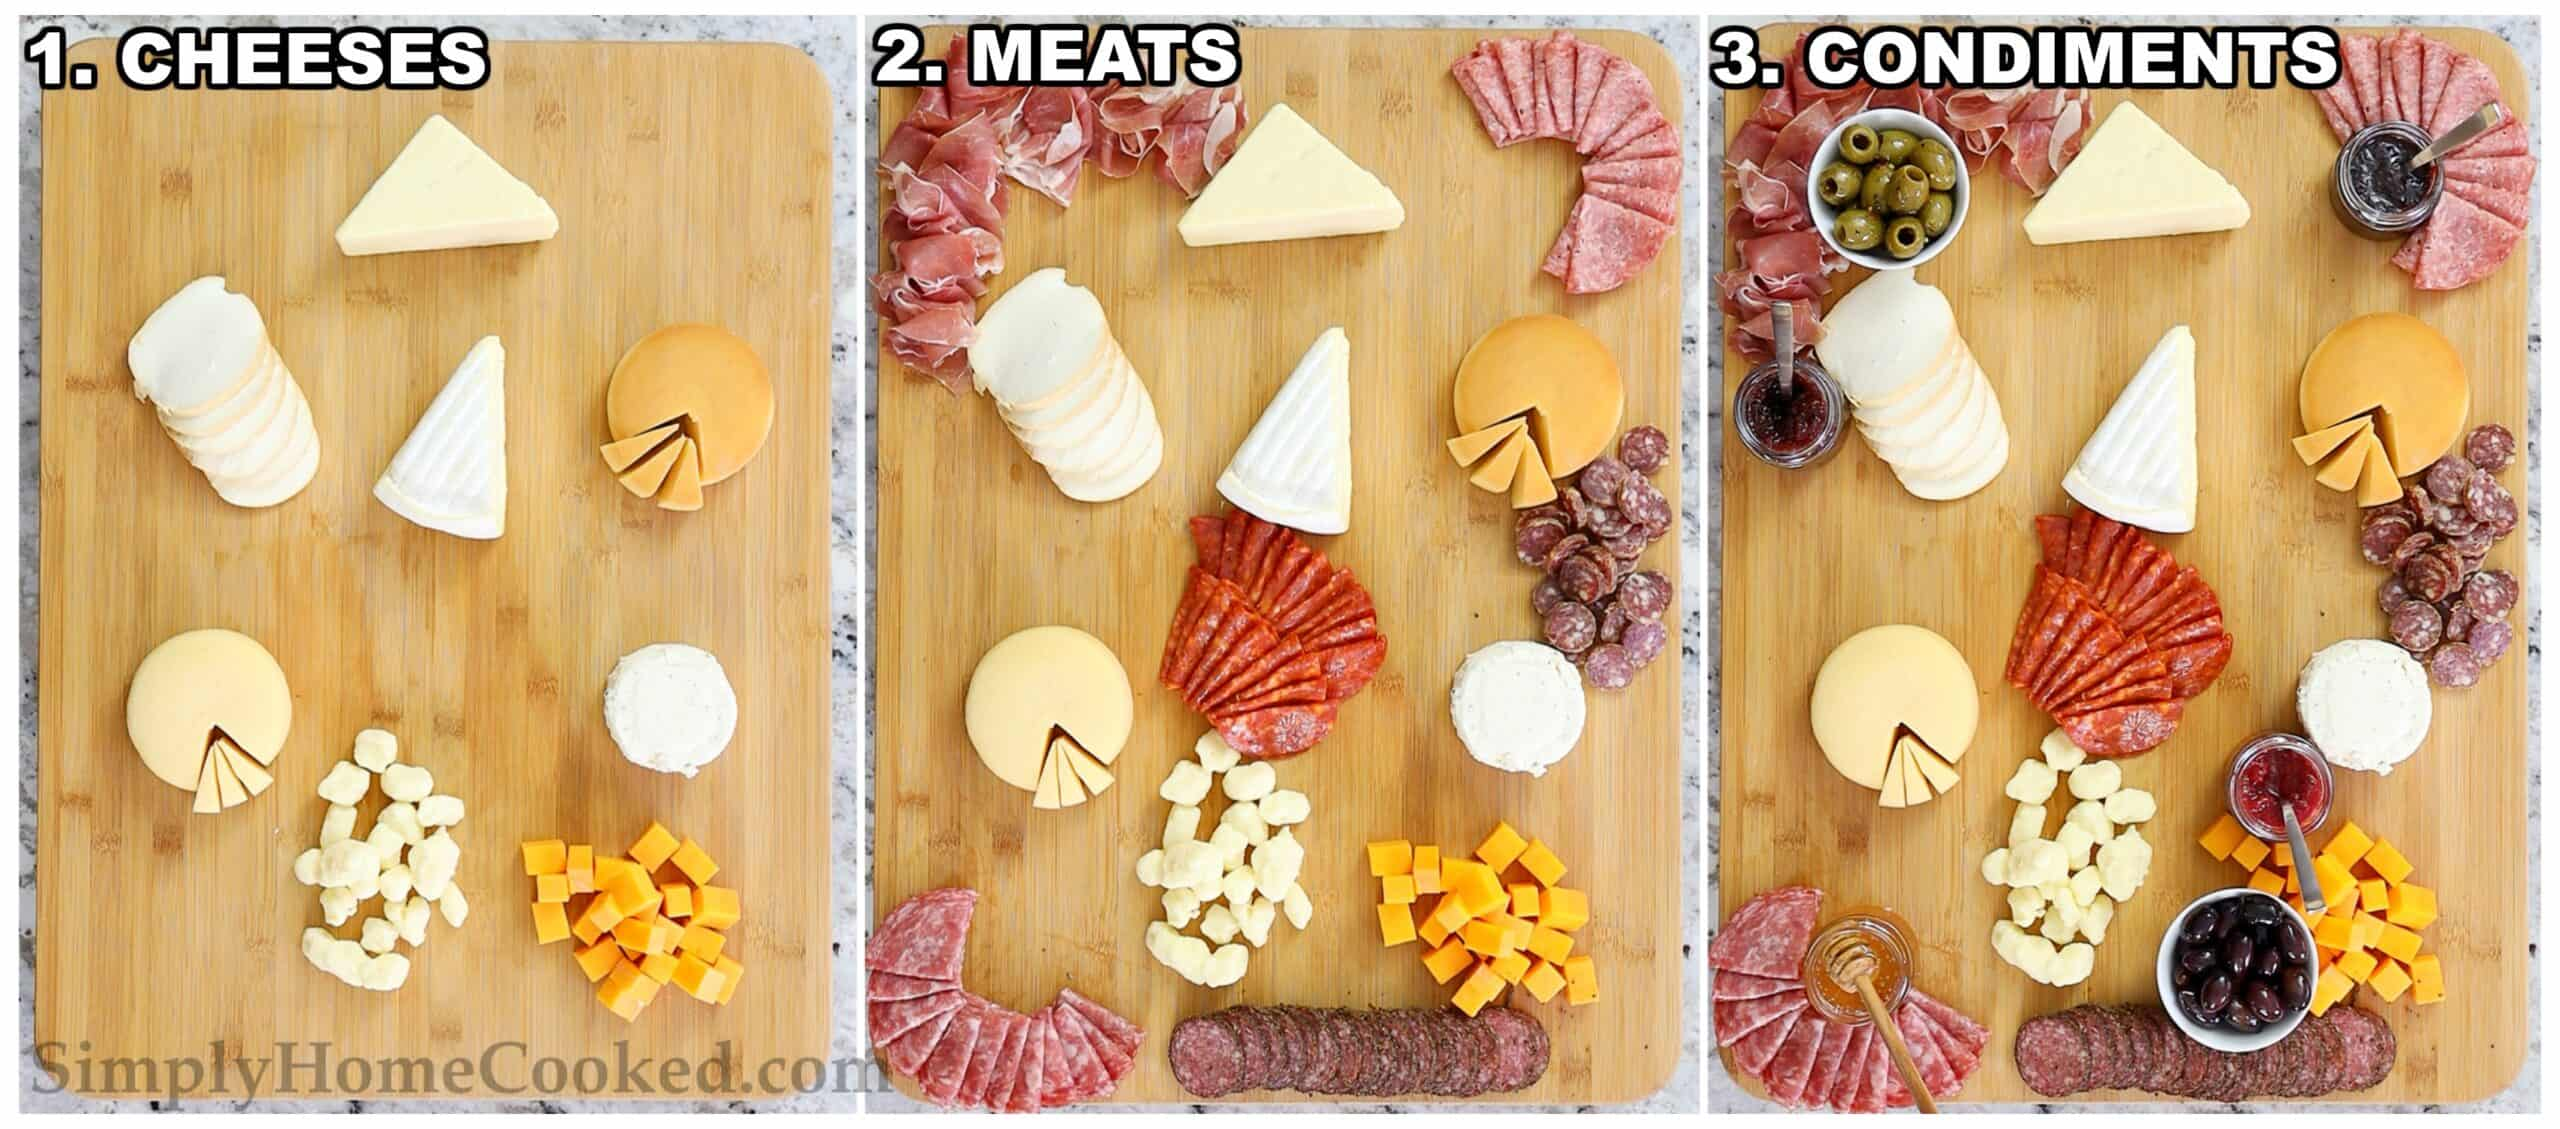 Steps to assemble the Ultimate Charcuterie Board, starting with the cheeses, then meats, and then condiments on a wooden board.